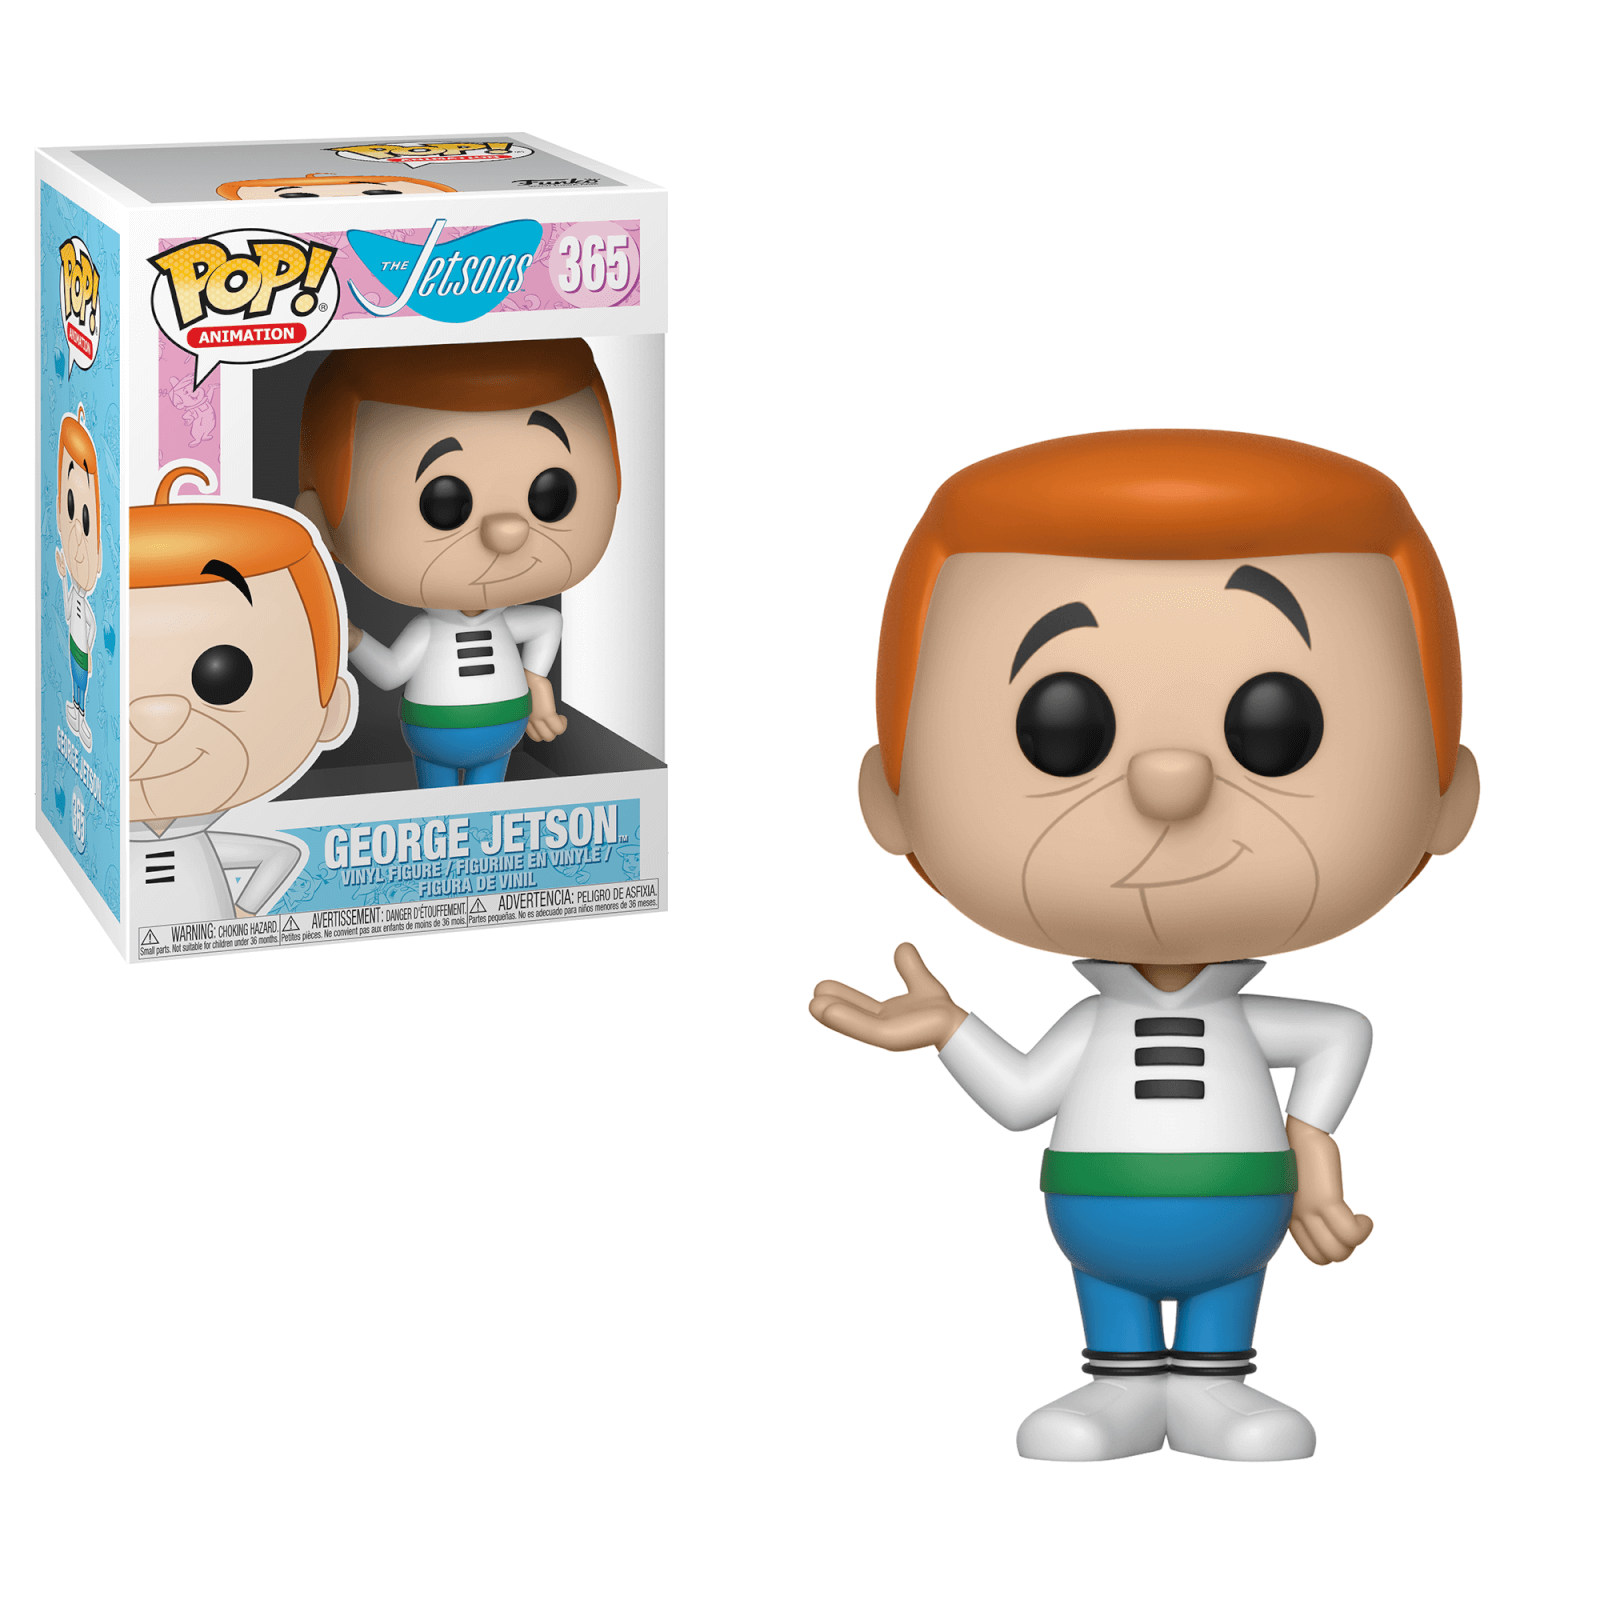 The Jetsons George Pop! Vinyl Figure